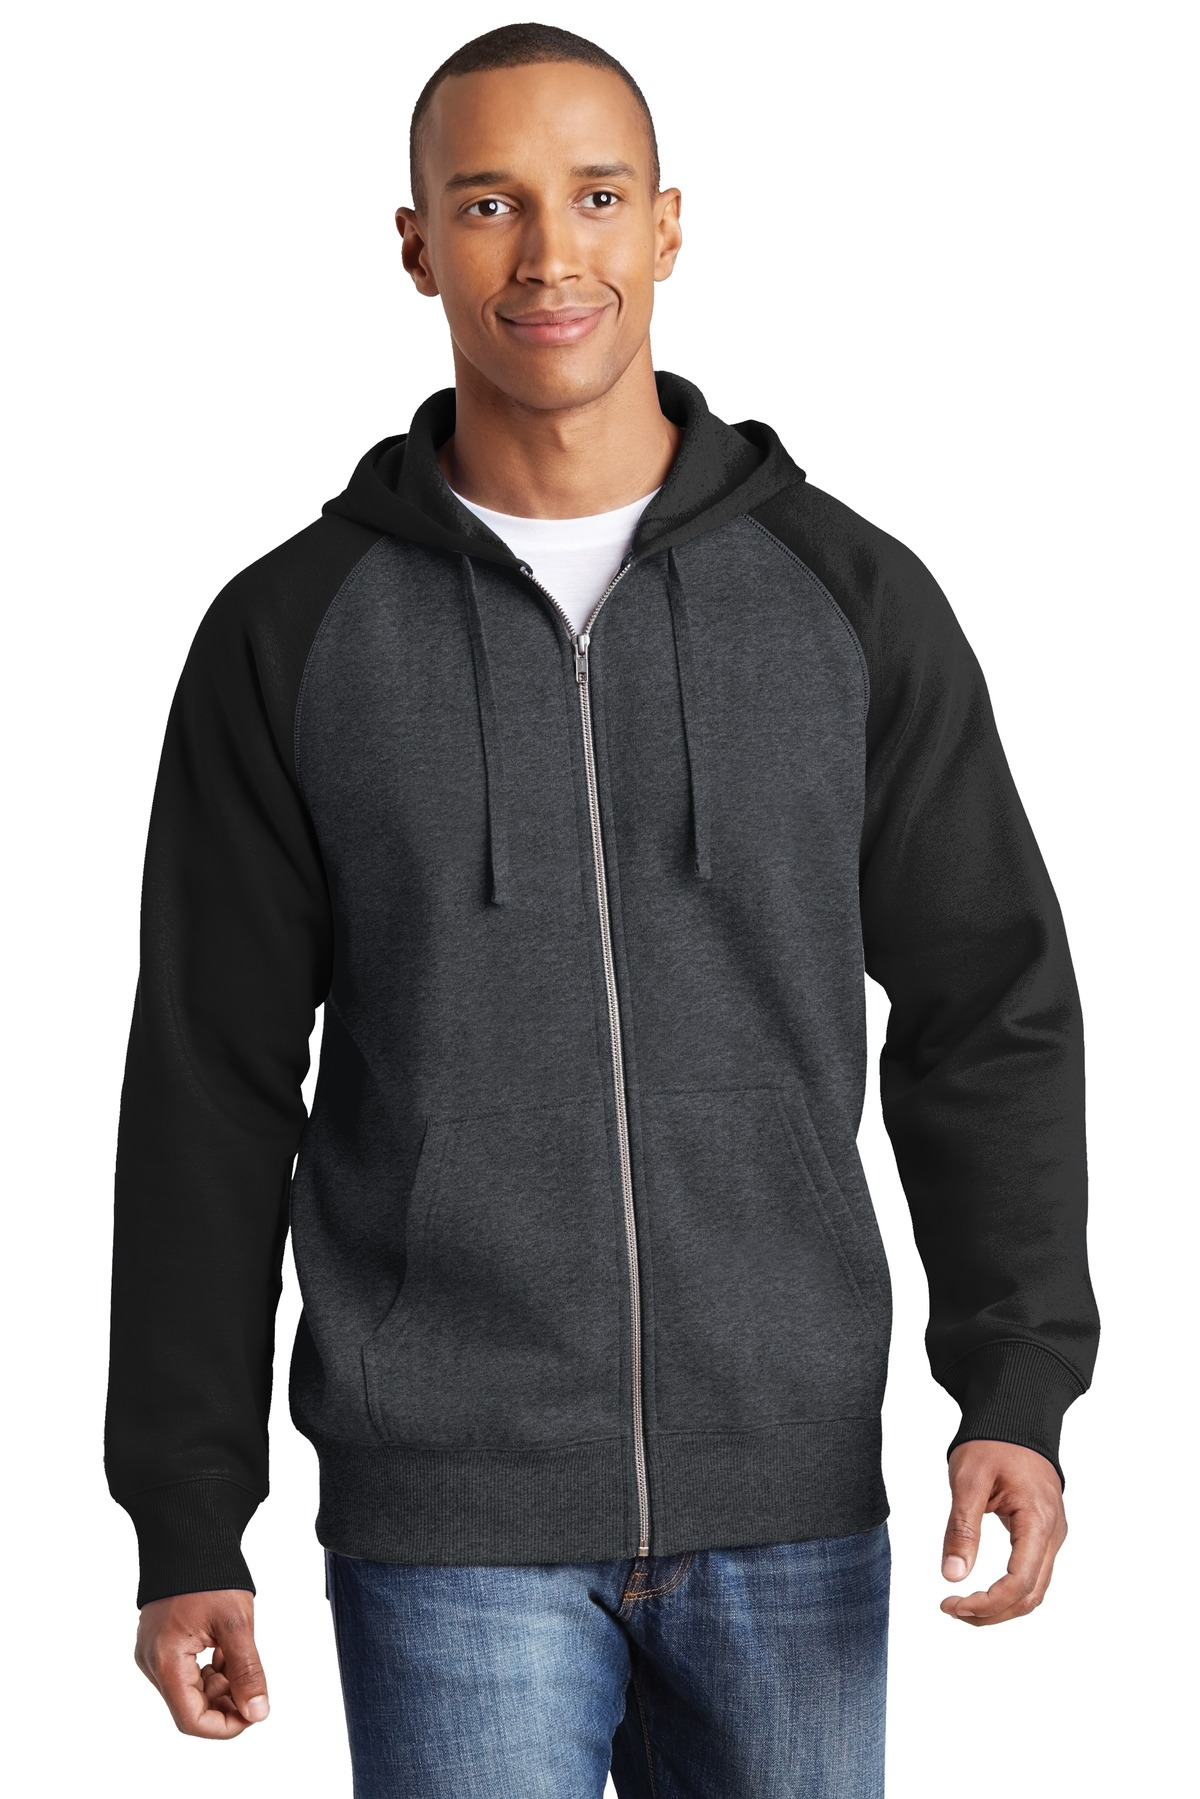 Sport Tek St269 Raglan Colorblock Full Zip Hooded Fleece Jacket Fleece Sport tek wholesale polos and shirts. sport tek st269 raglan colorblock full zip hooded fleece jacket